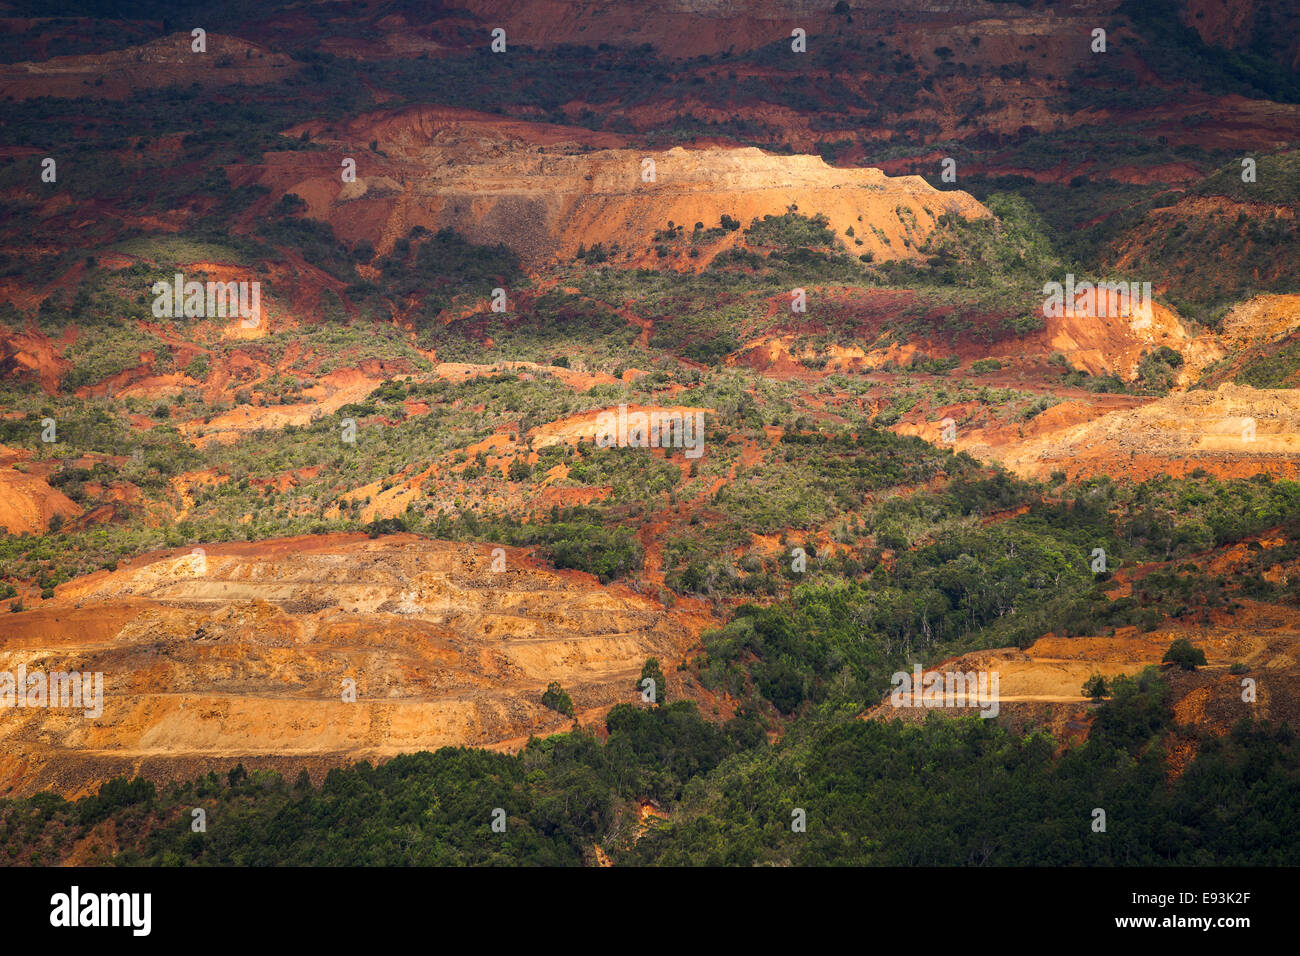 Countryside with red earth, Grande Terre, New Caledonia, Oceania - Stock Image